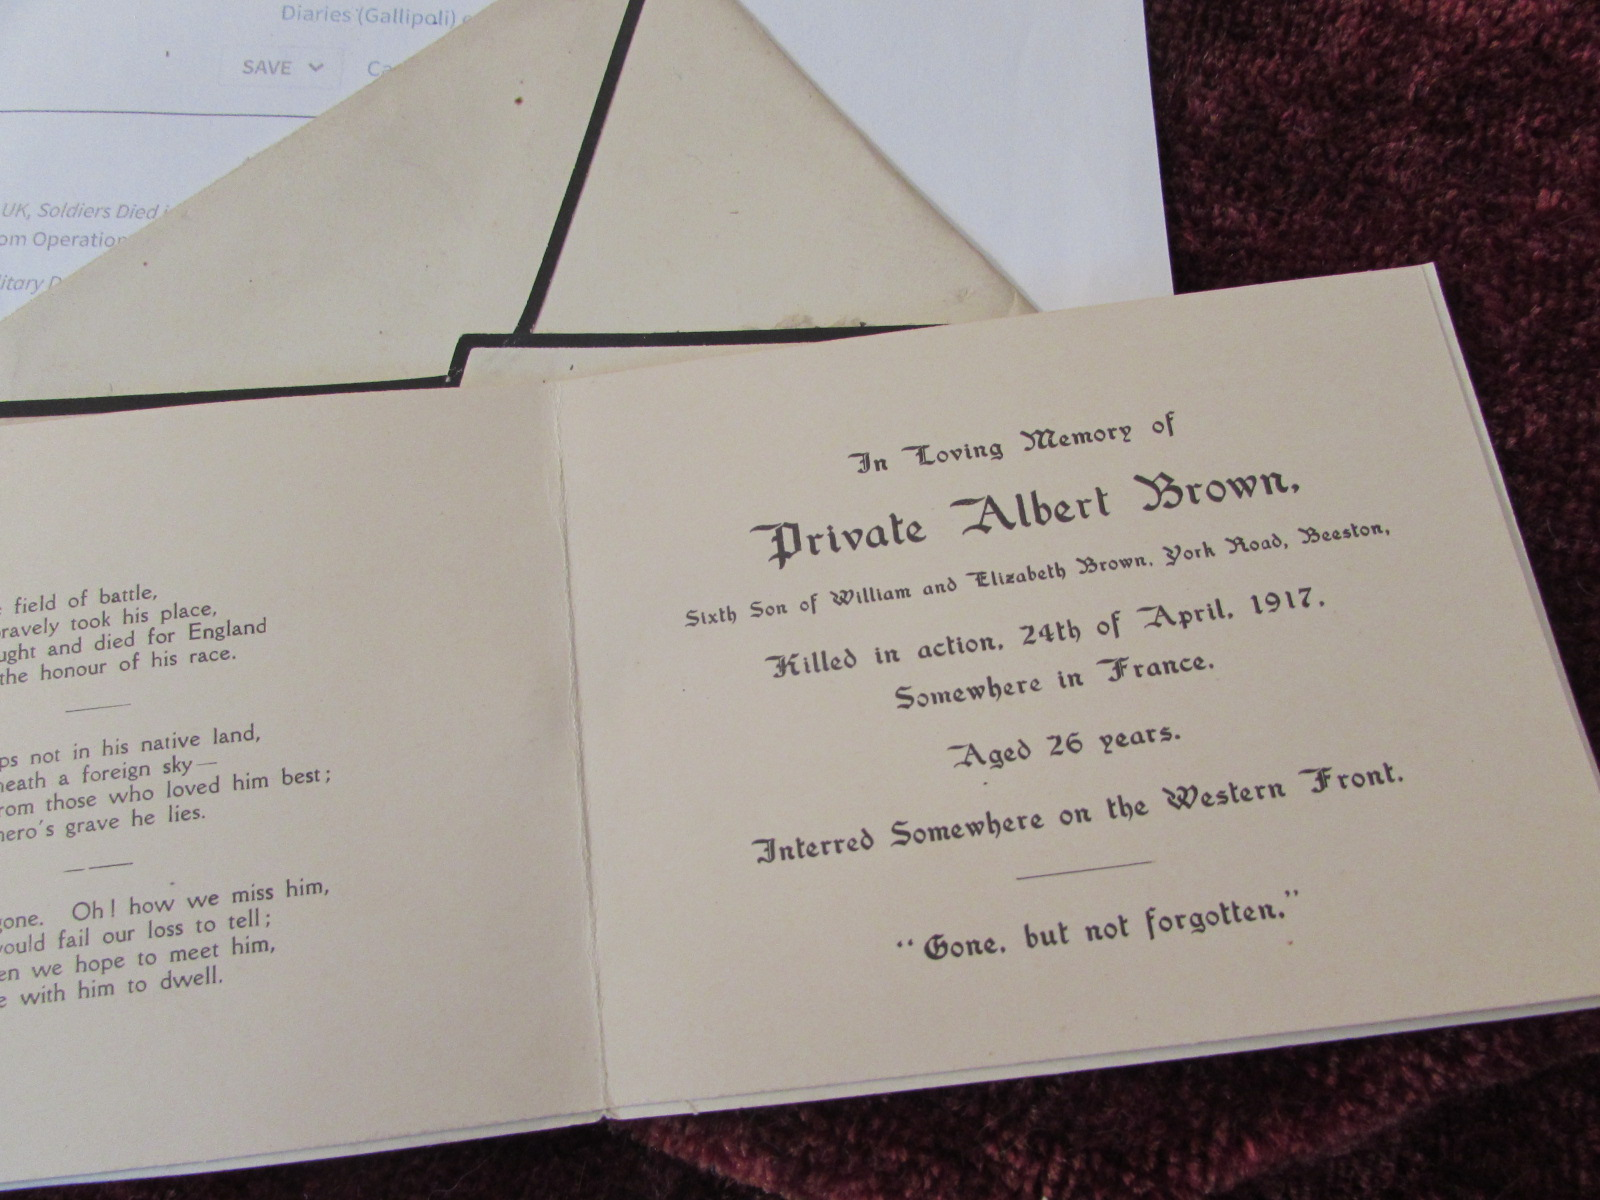 Death Card for Albert Brown